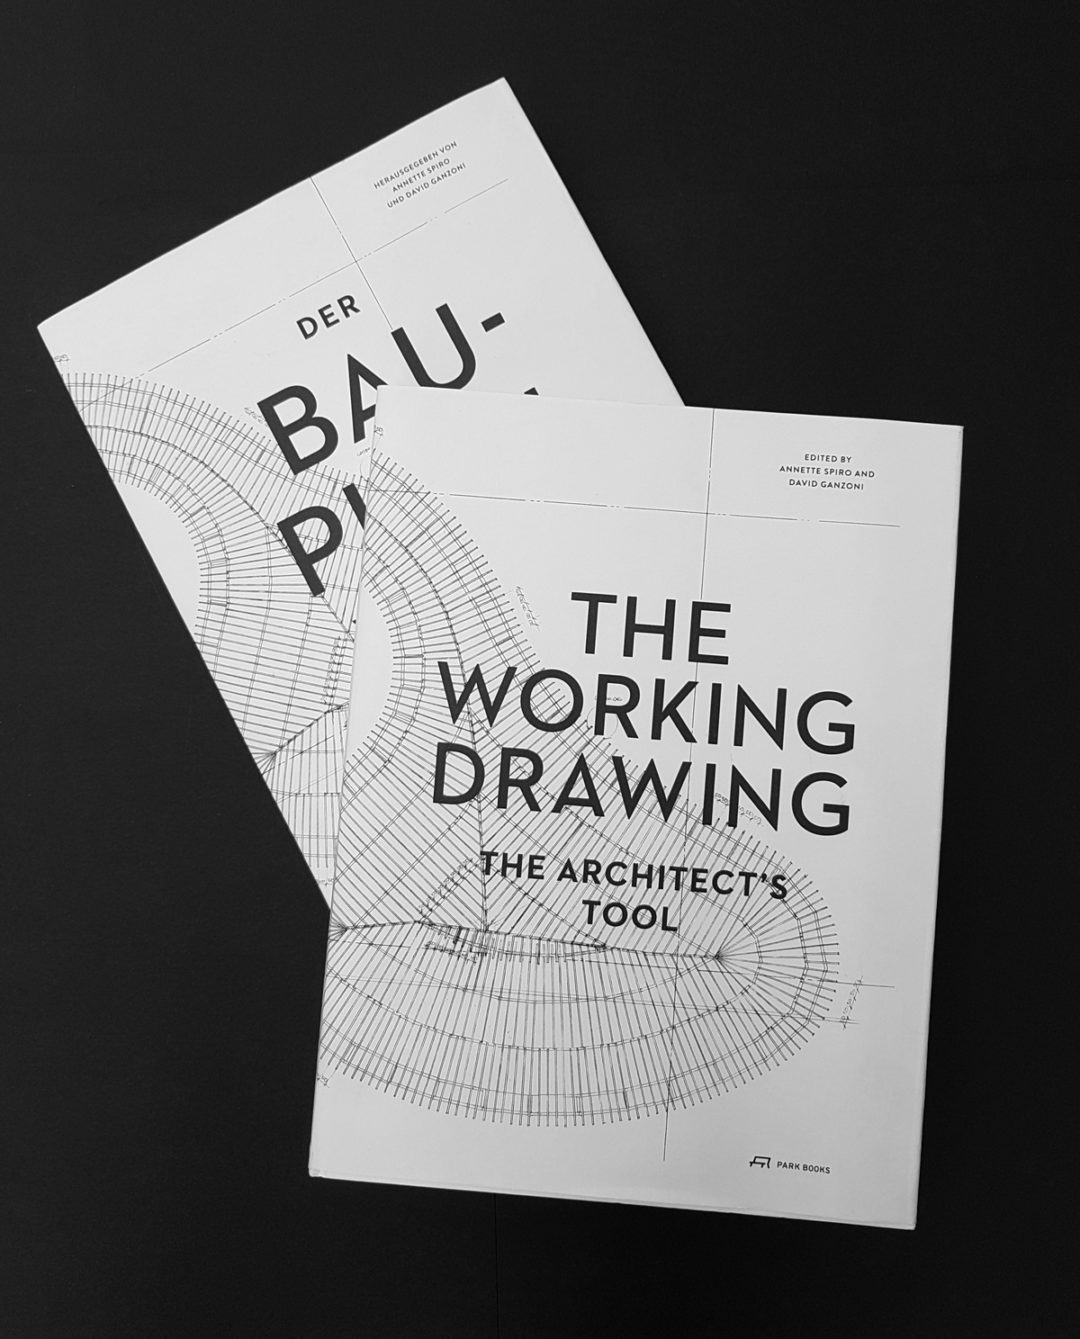 Der Bauplan.  Das Werkzeug des Architekten / The Working Drawing. The Architect's Tool